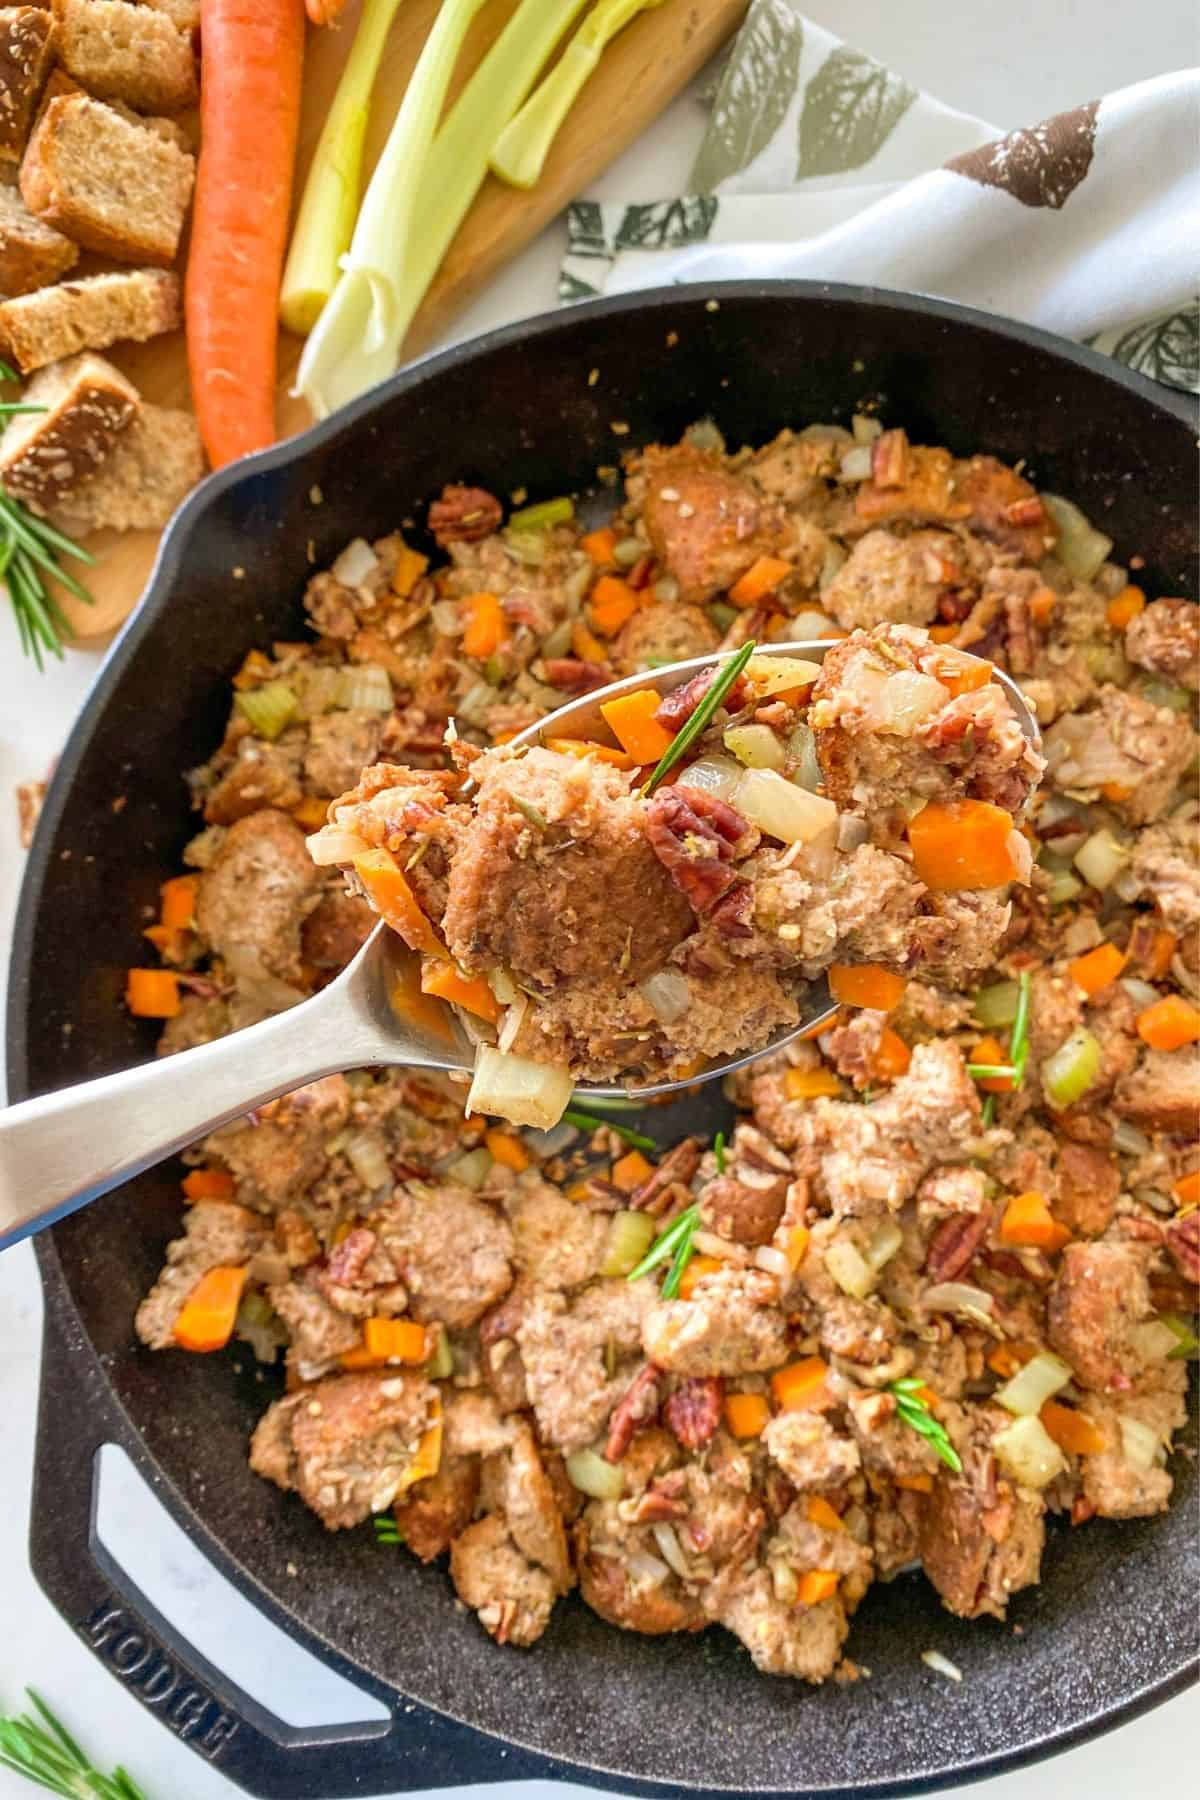 Spoonful of vegan stuffing being held up above cast iron pan with remaining stuffing.